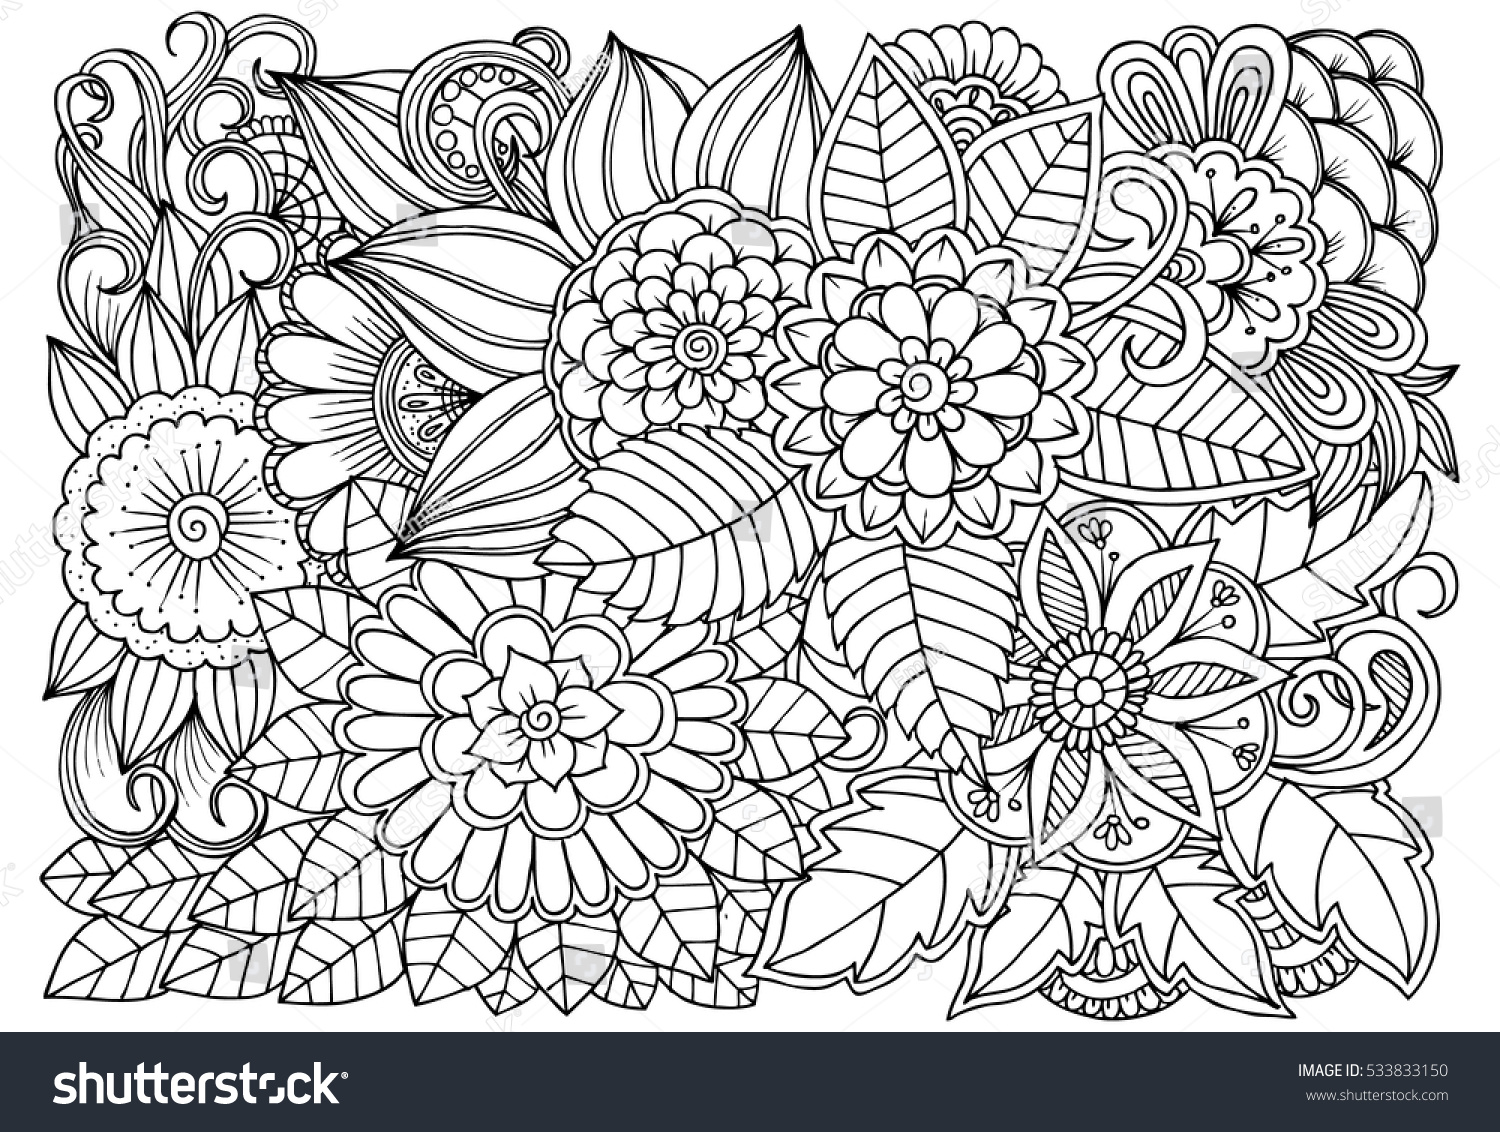 Scribble Drawing Art Therapy : Doodle floral drawing art therapy coloring stock vector